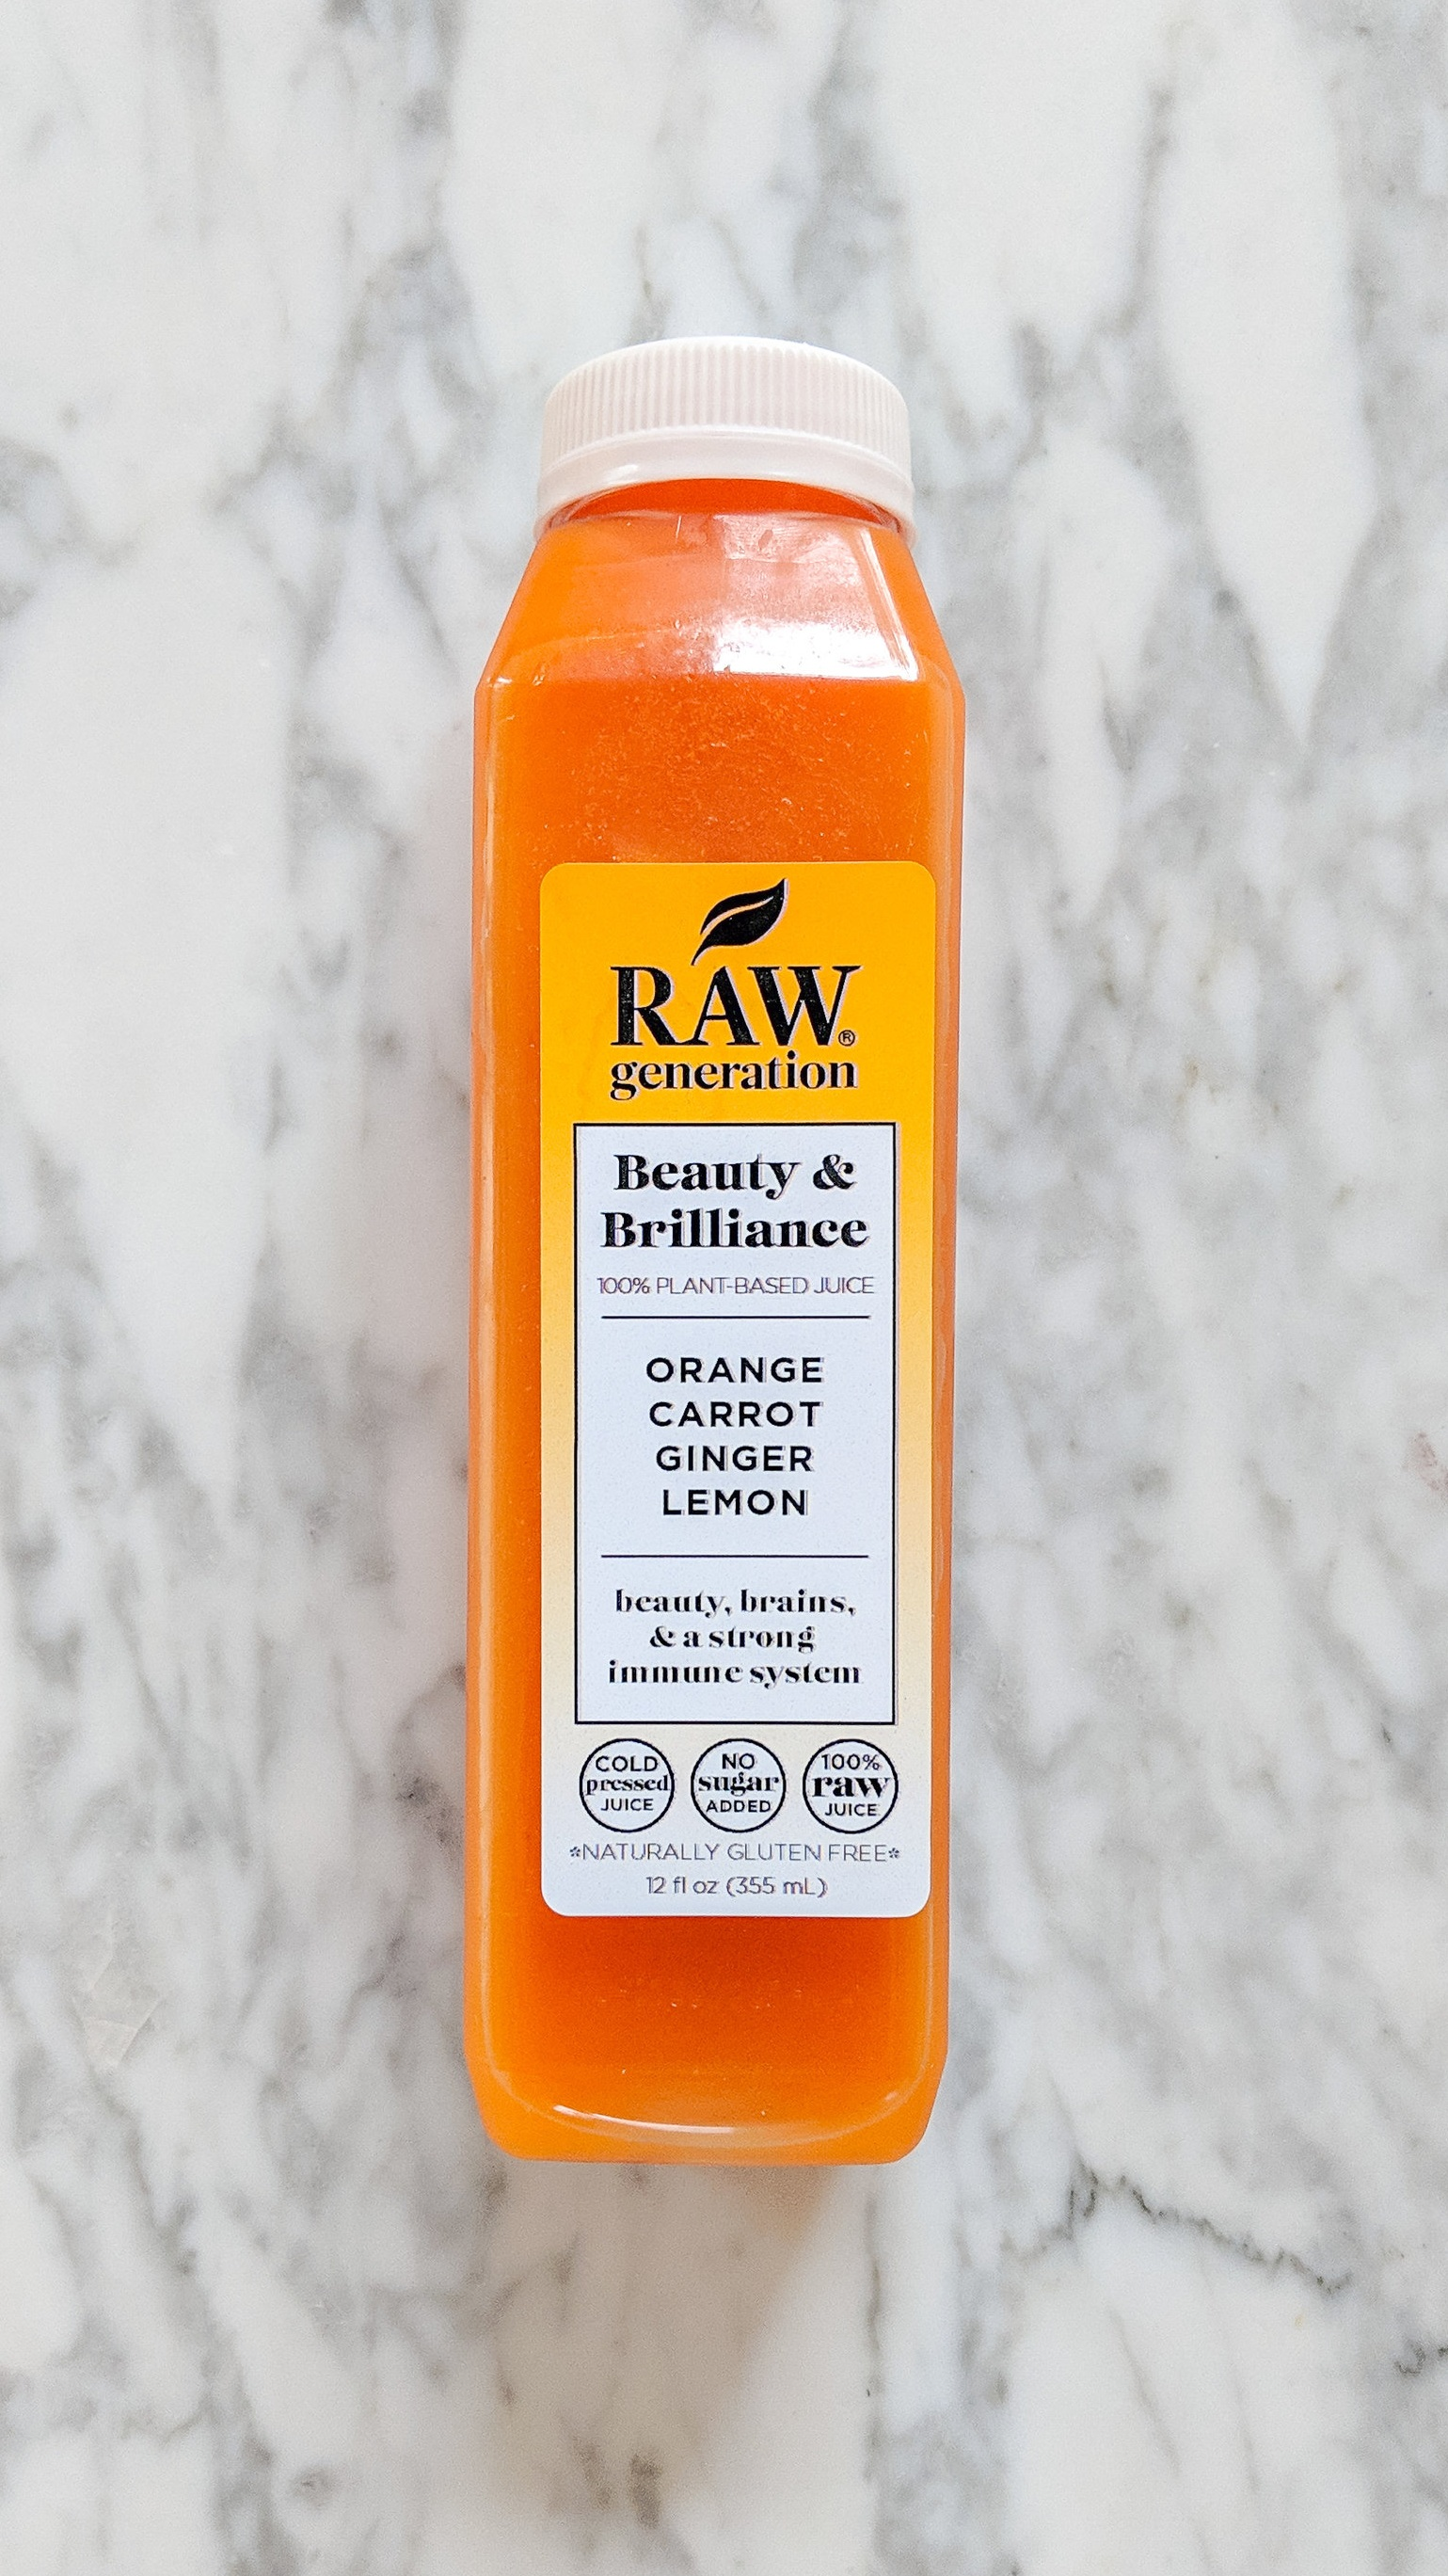 """Beauty & Brilliance"" - INGREDIENTS: carrot, orange, lemon, ginger, filtered water.WHAT IT DOES: This juice is for ""beauty, brains, and a strong immune system."" This juice I drank around dinner time and was one of the more filling and satisfying juices. I love anything with ginger and lemon too, it was delicious!"